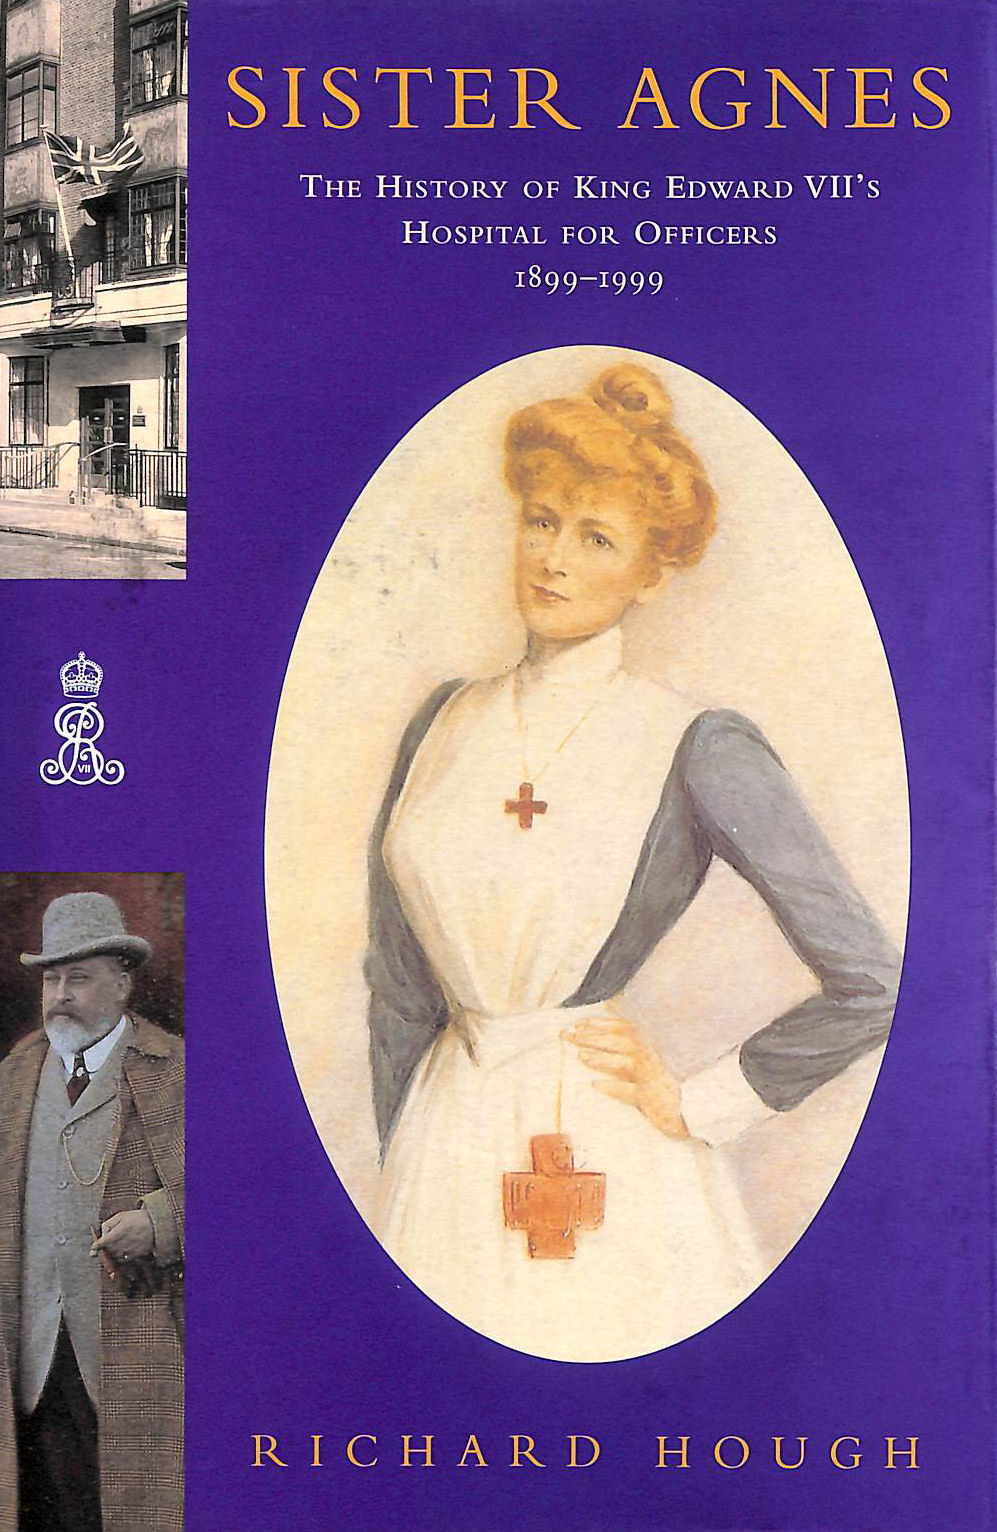 Image for Sister Agnes: The History of King Edward VII's Hospital for Officers 1899-1999                            The History of King Edward VII's Hospital for Officers,               1899-1999